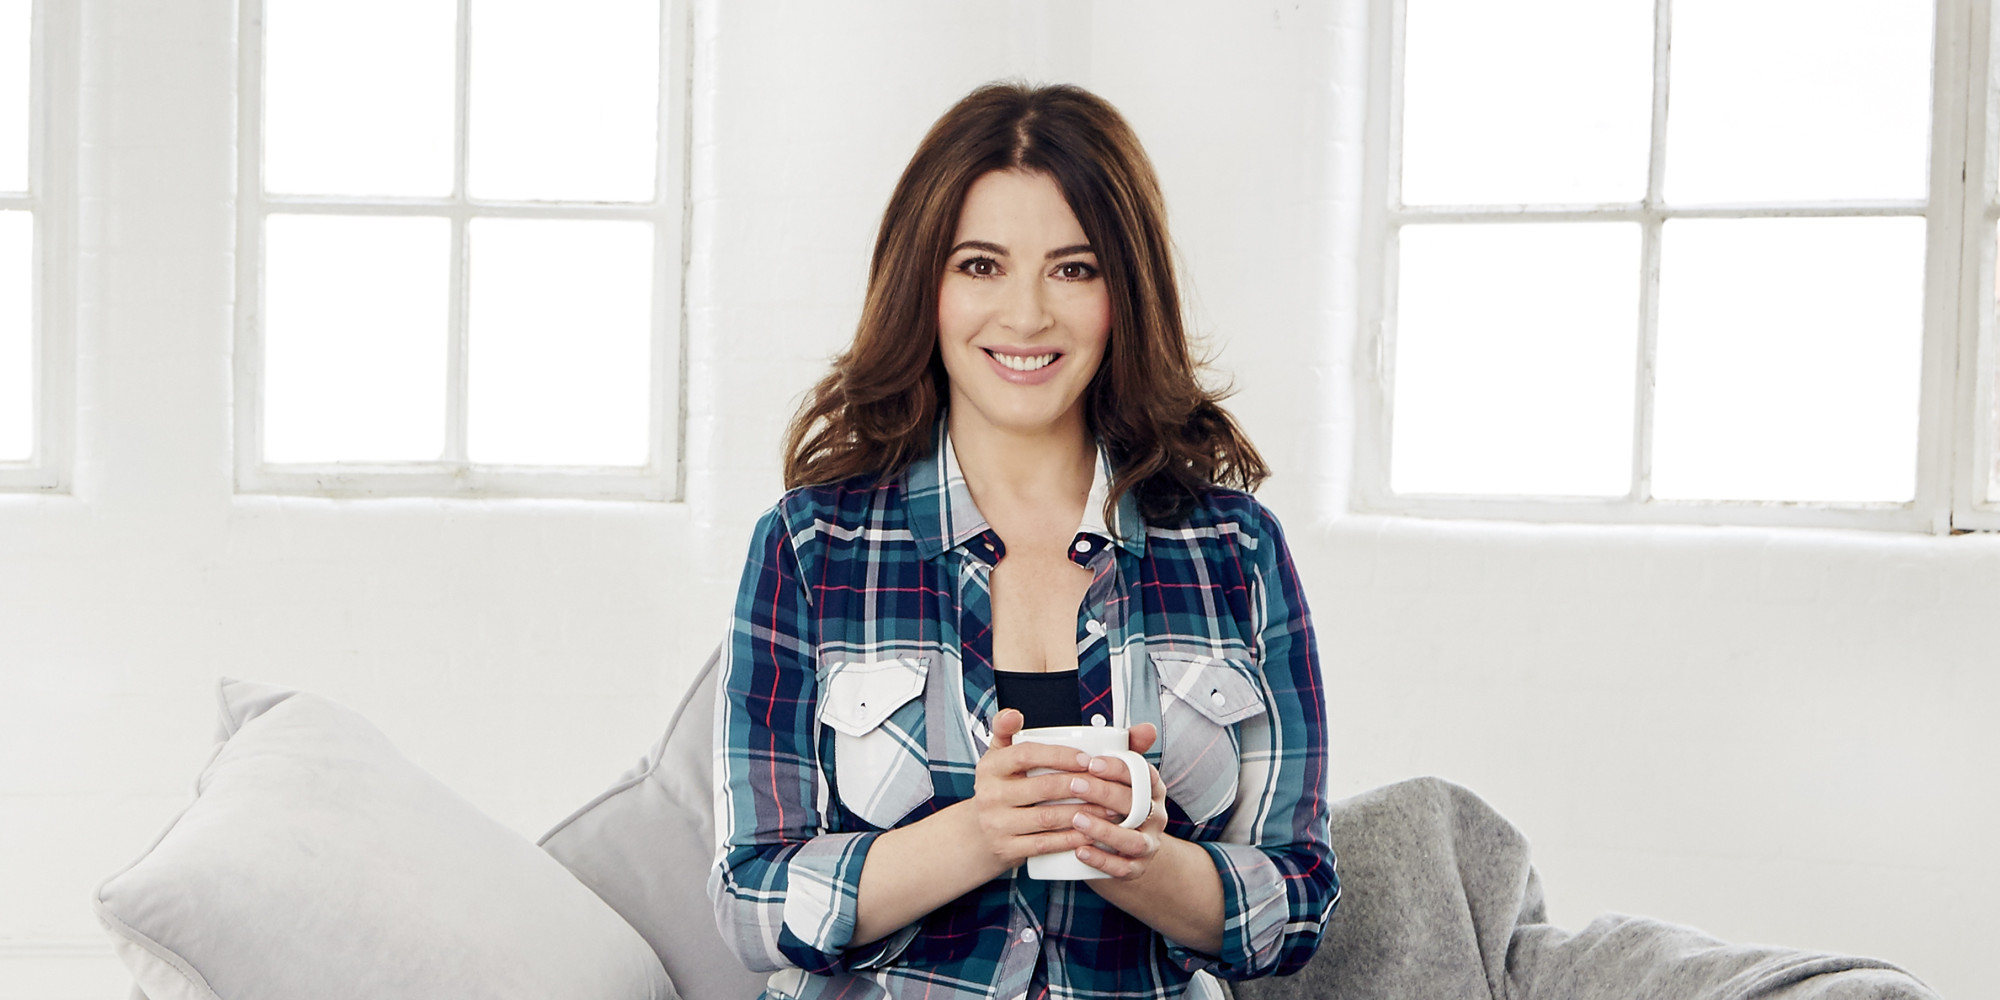 nigella lawson - photo #23